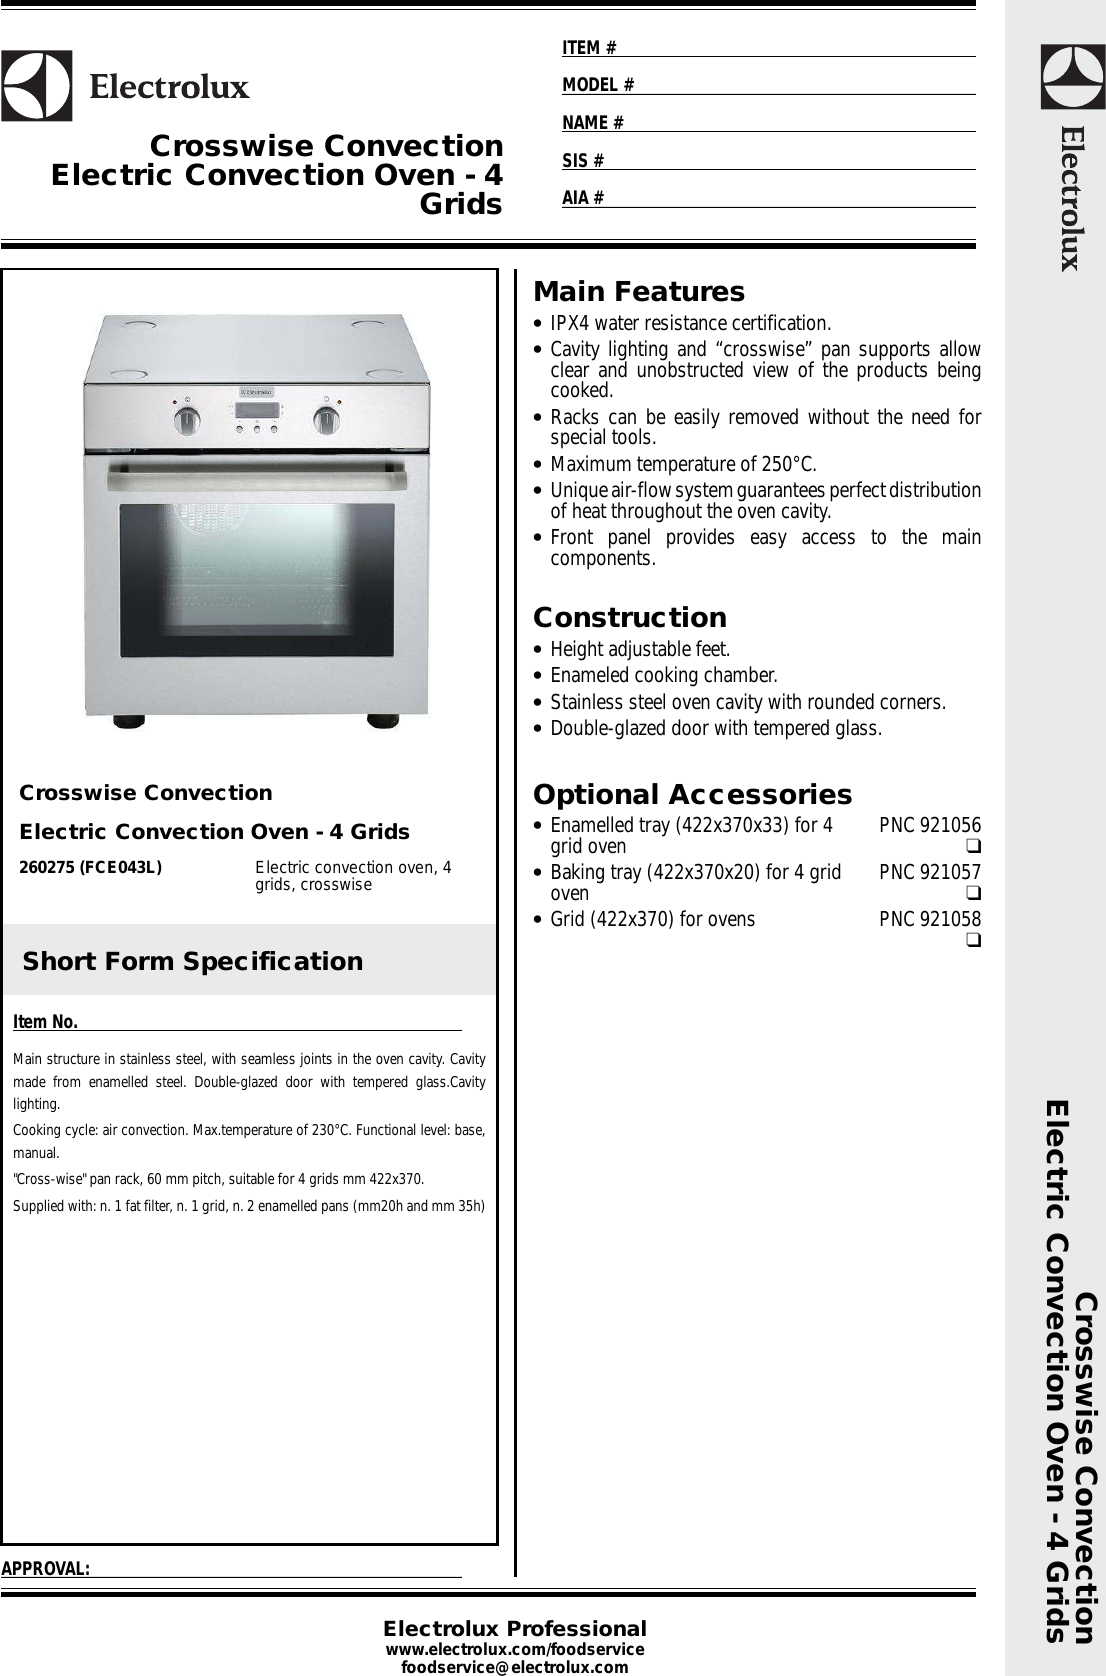 electrolux oven fce043l users manual Instruction Manual User Guide Template